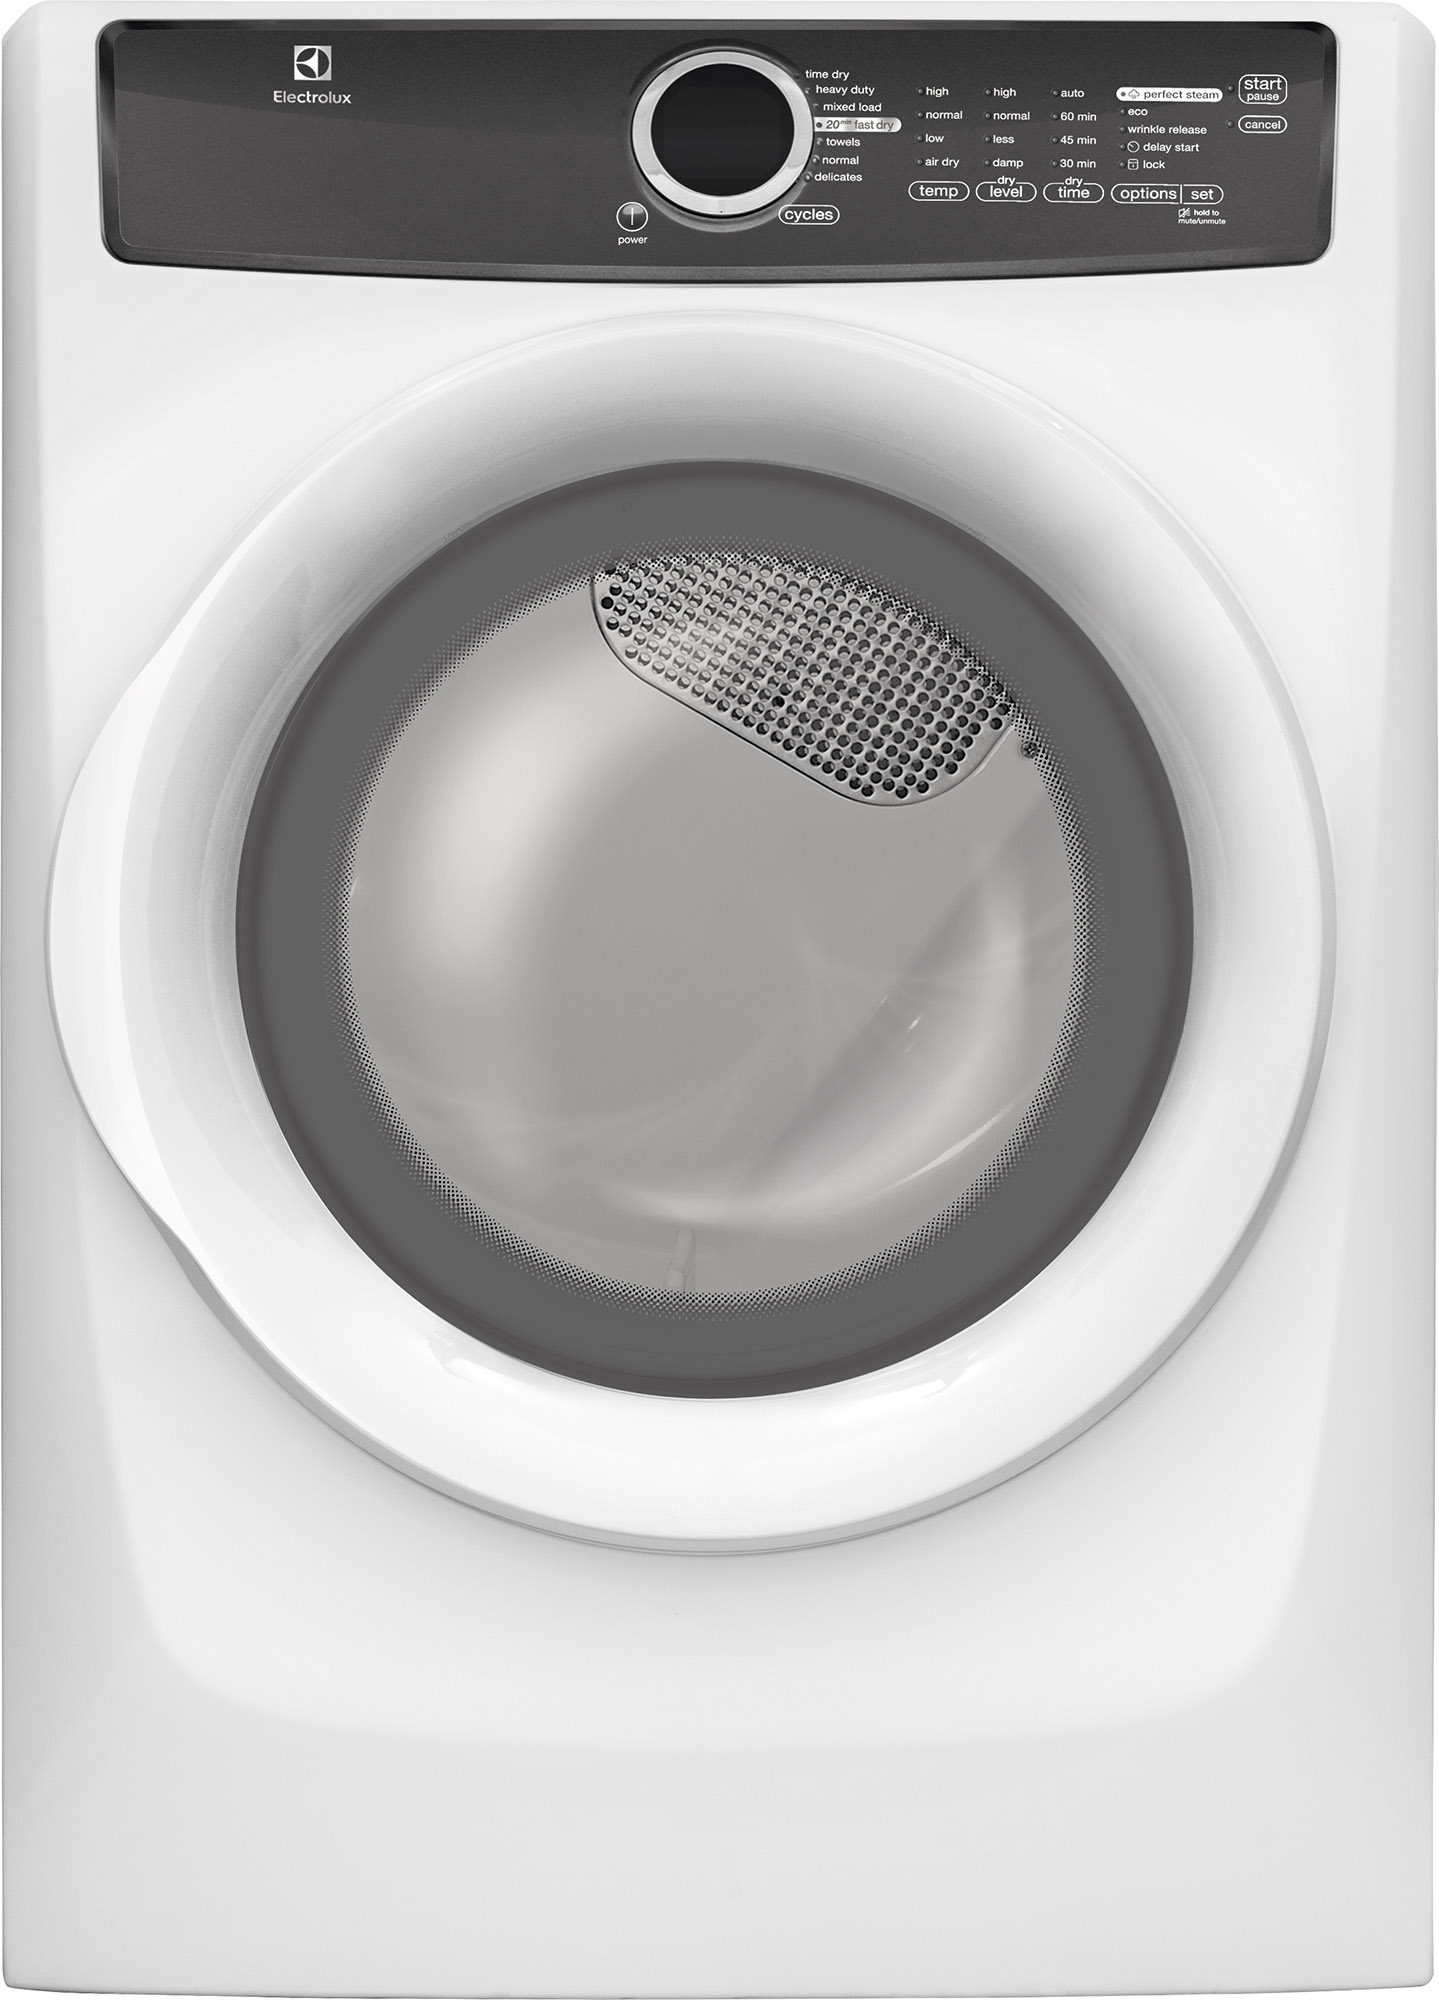 appliance pedestal pin trusted washer and dryer laundry electrolux